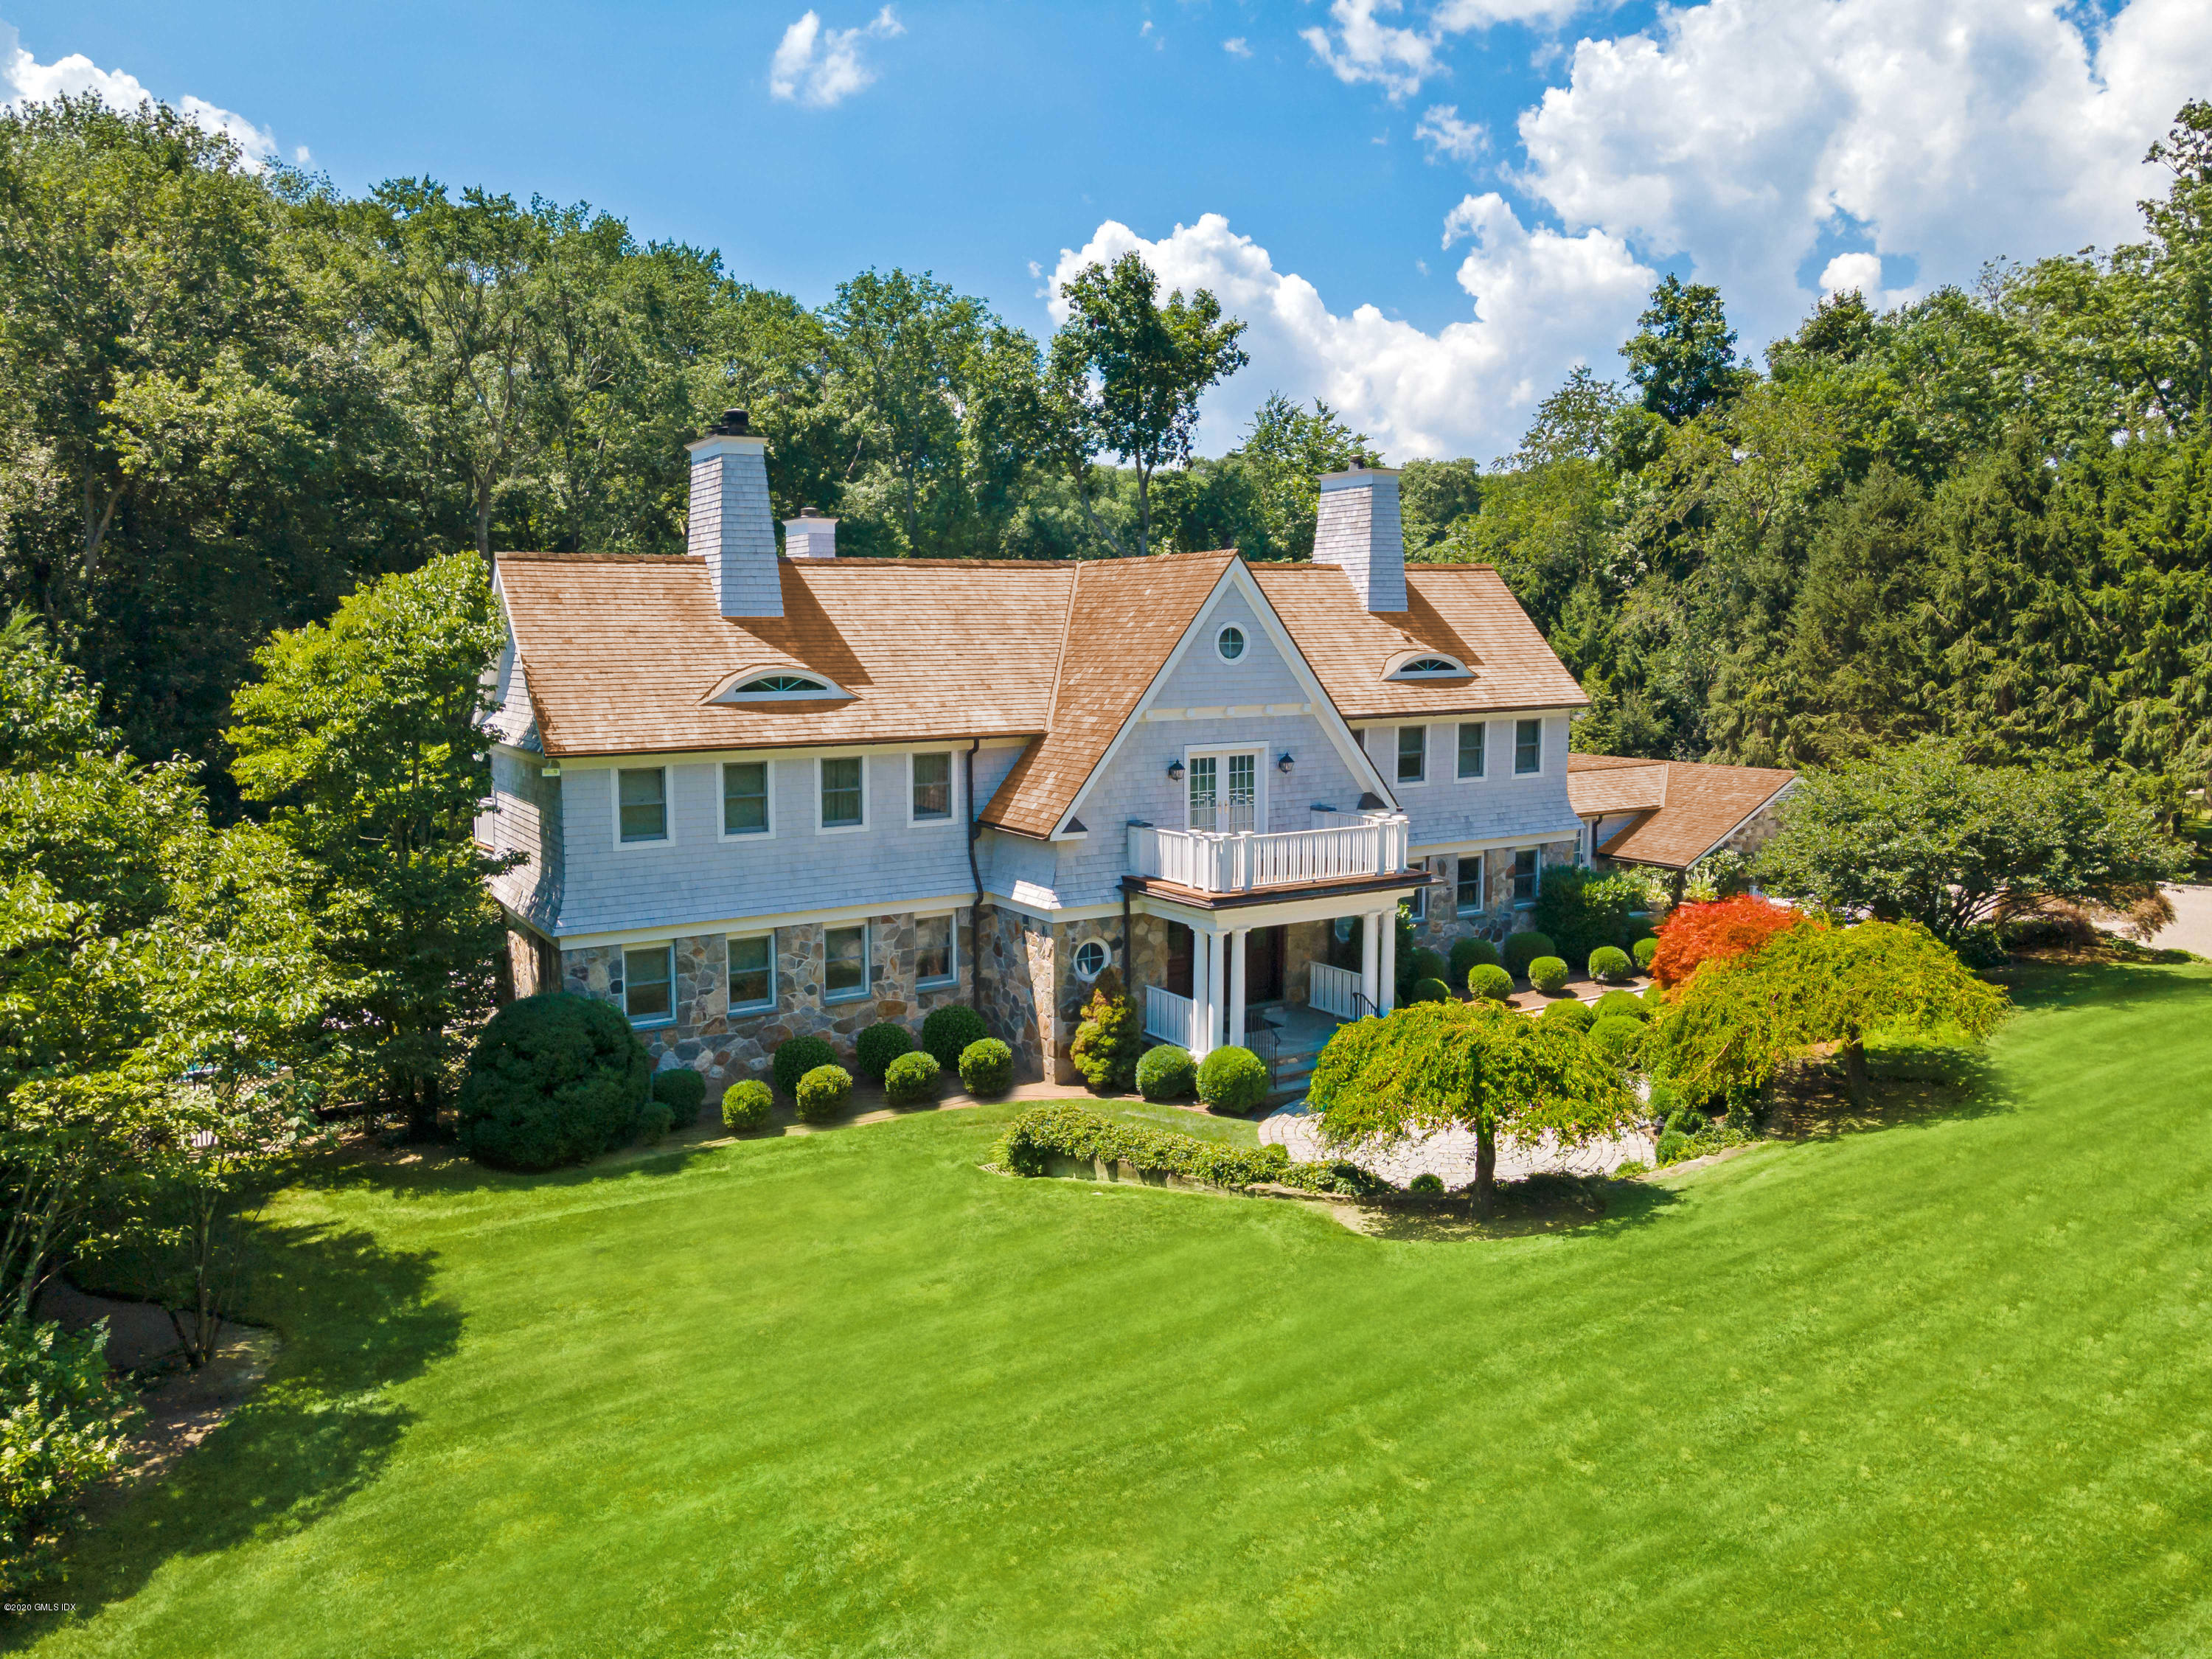 276 Riversville Road, Greenwich, Connecticut 06831, 5 Bedrooms Bedrooms, ,5 BathroomsBathrooms,Single family,For sale,Riversville,111053